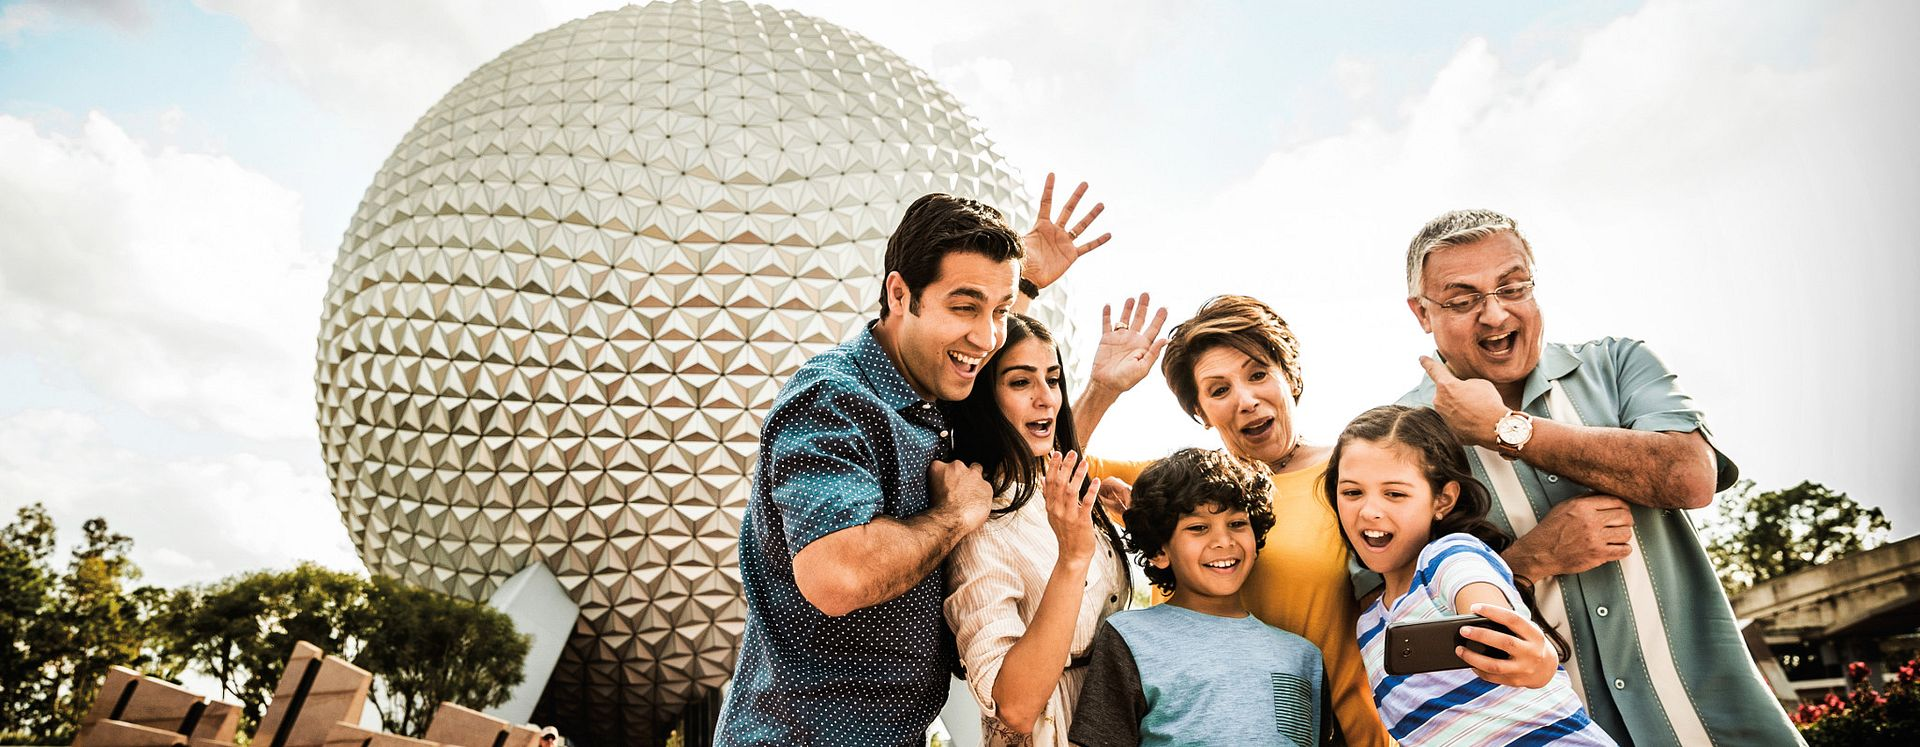 Family posing for a selfie in front of the ball at Epcot